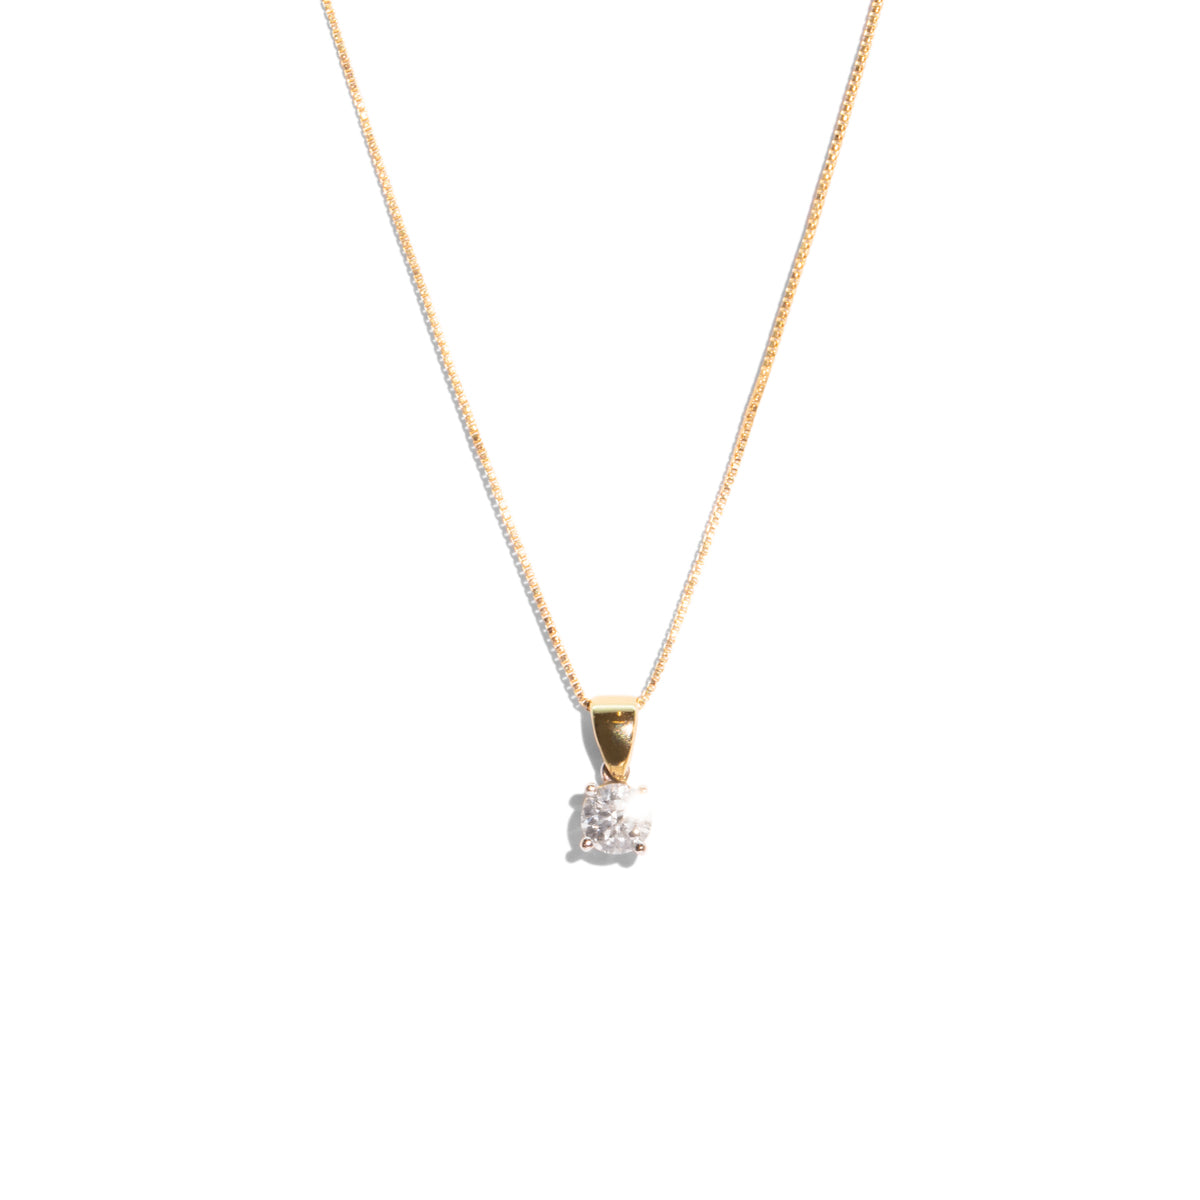 The Marianne Vintage Diamond Necklace